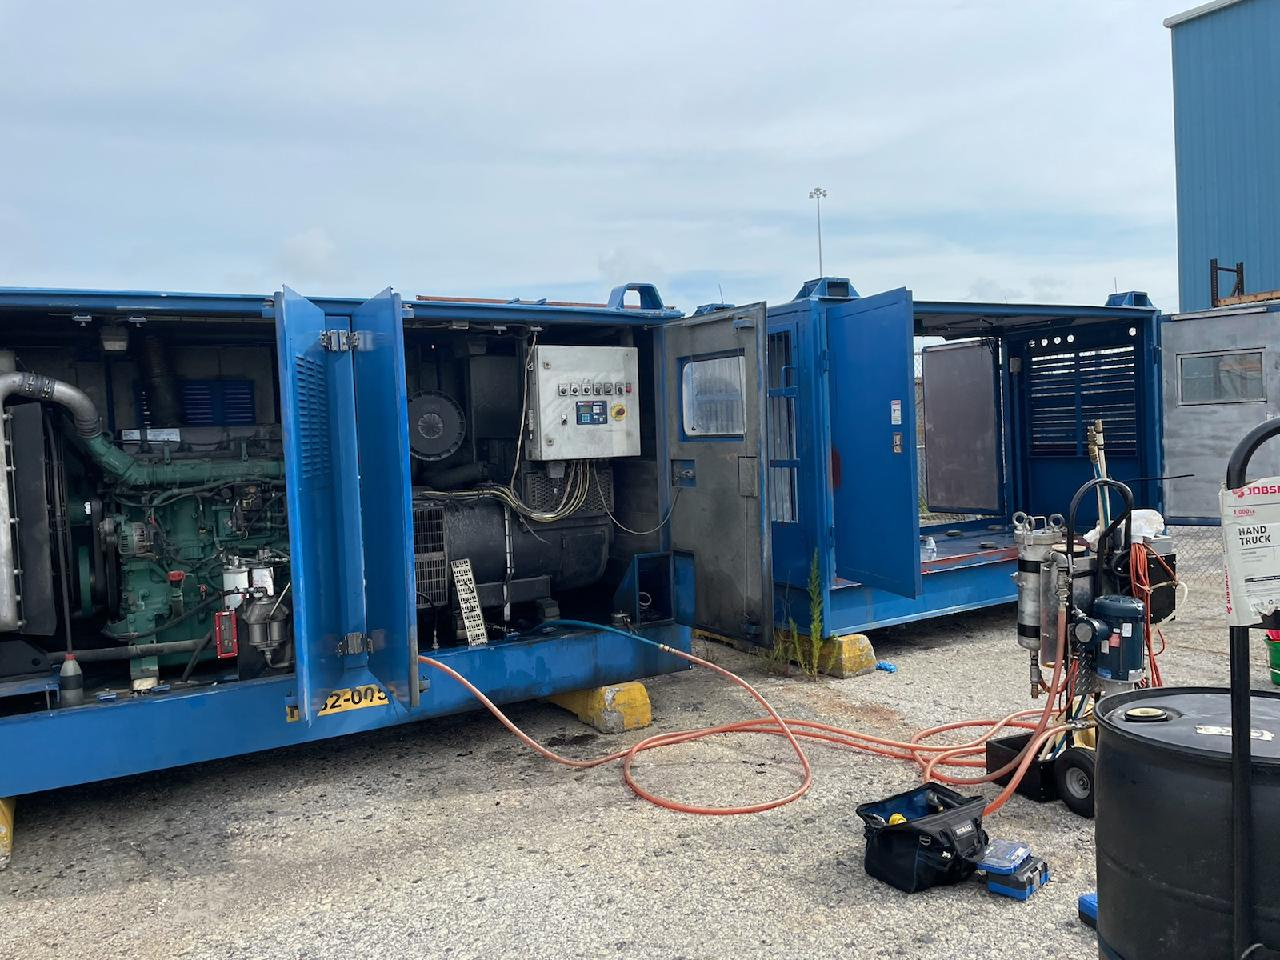 engine-units-are-at-Charleston-sc cleaning fuel